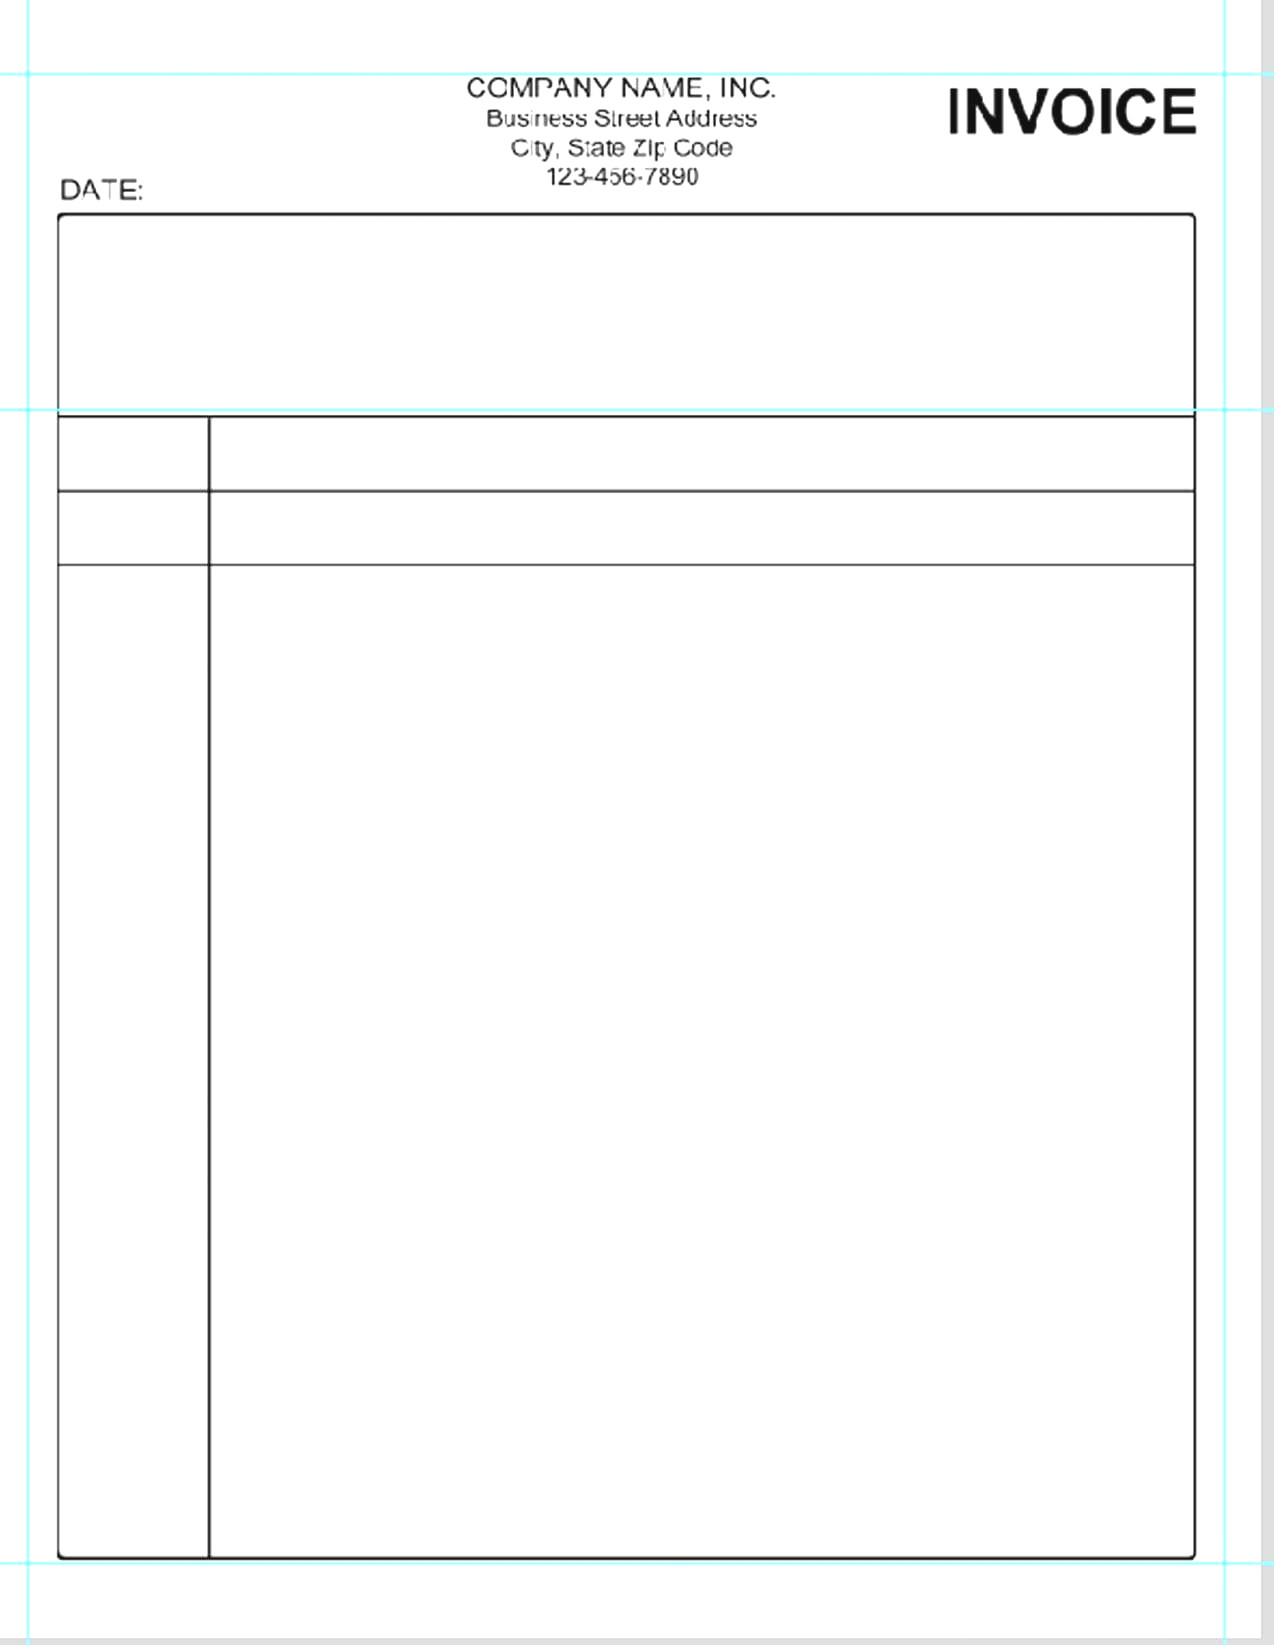 Simple Invoice Template Microsoft Word 1   Colorium Laboratorium For Invoice Templates For Microsoft Word